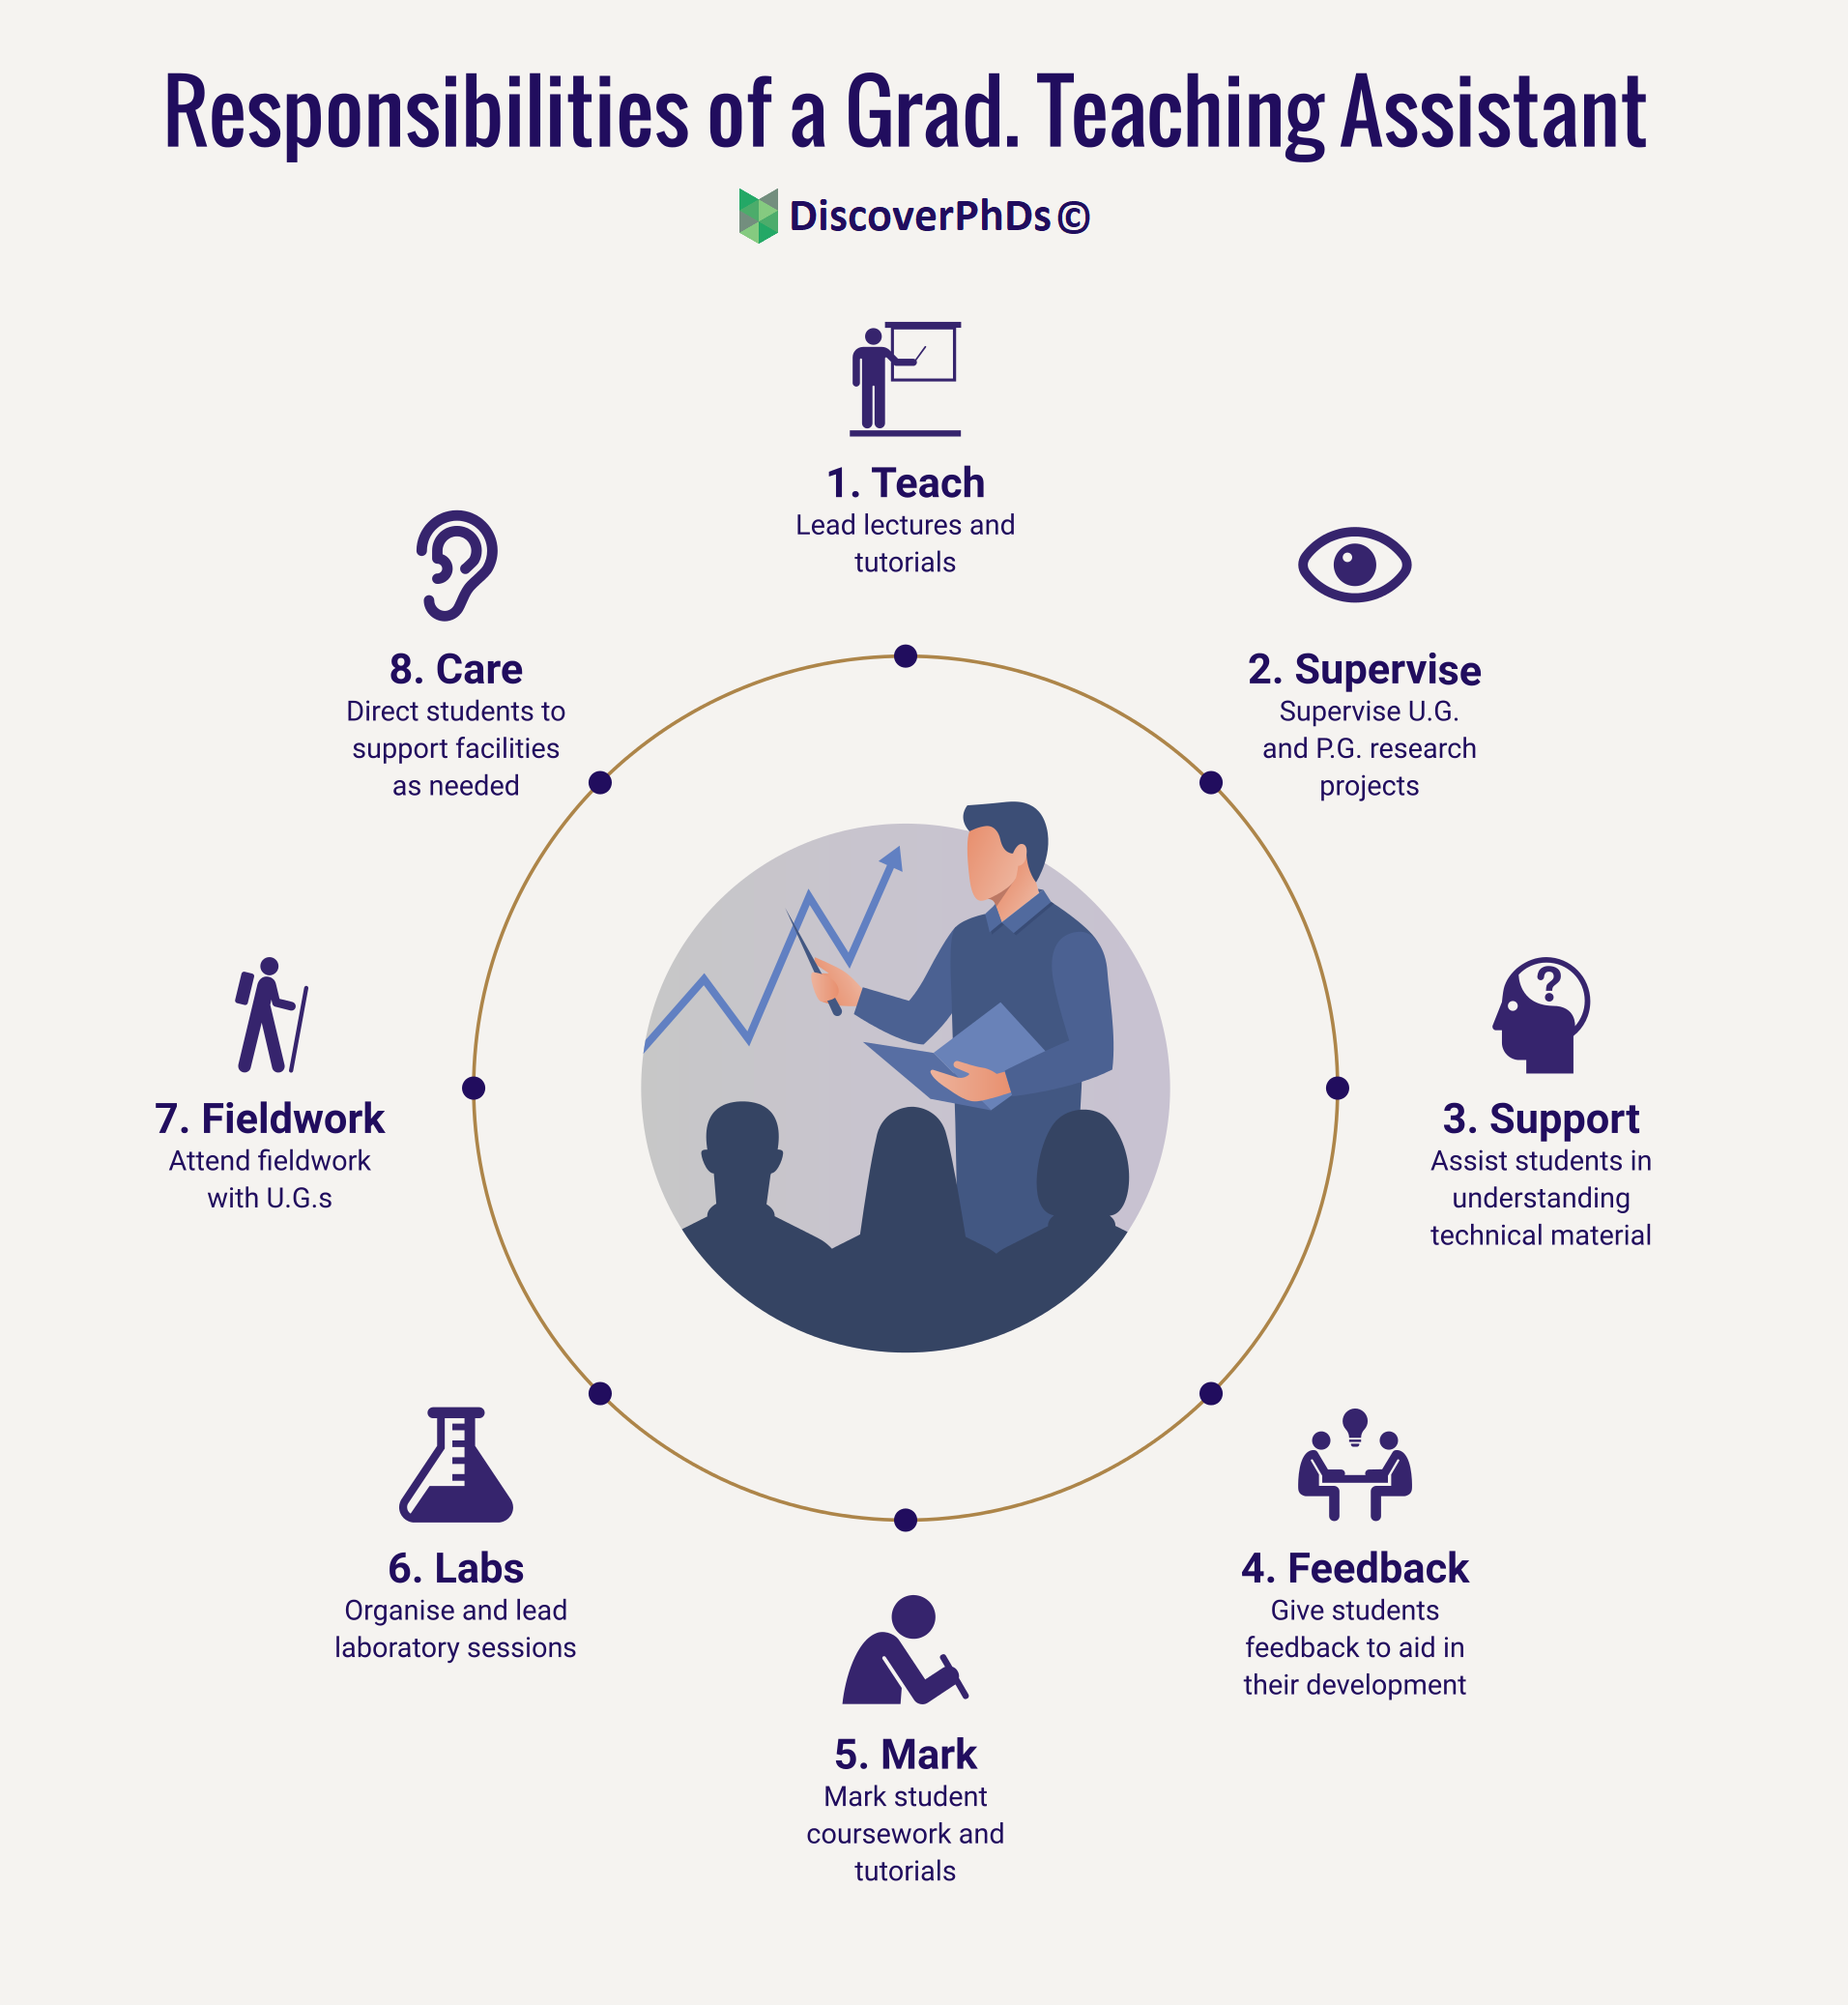 What does a Graduate Teaching Assistant do